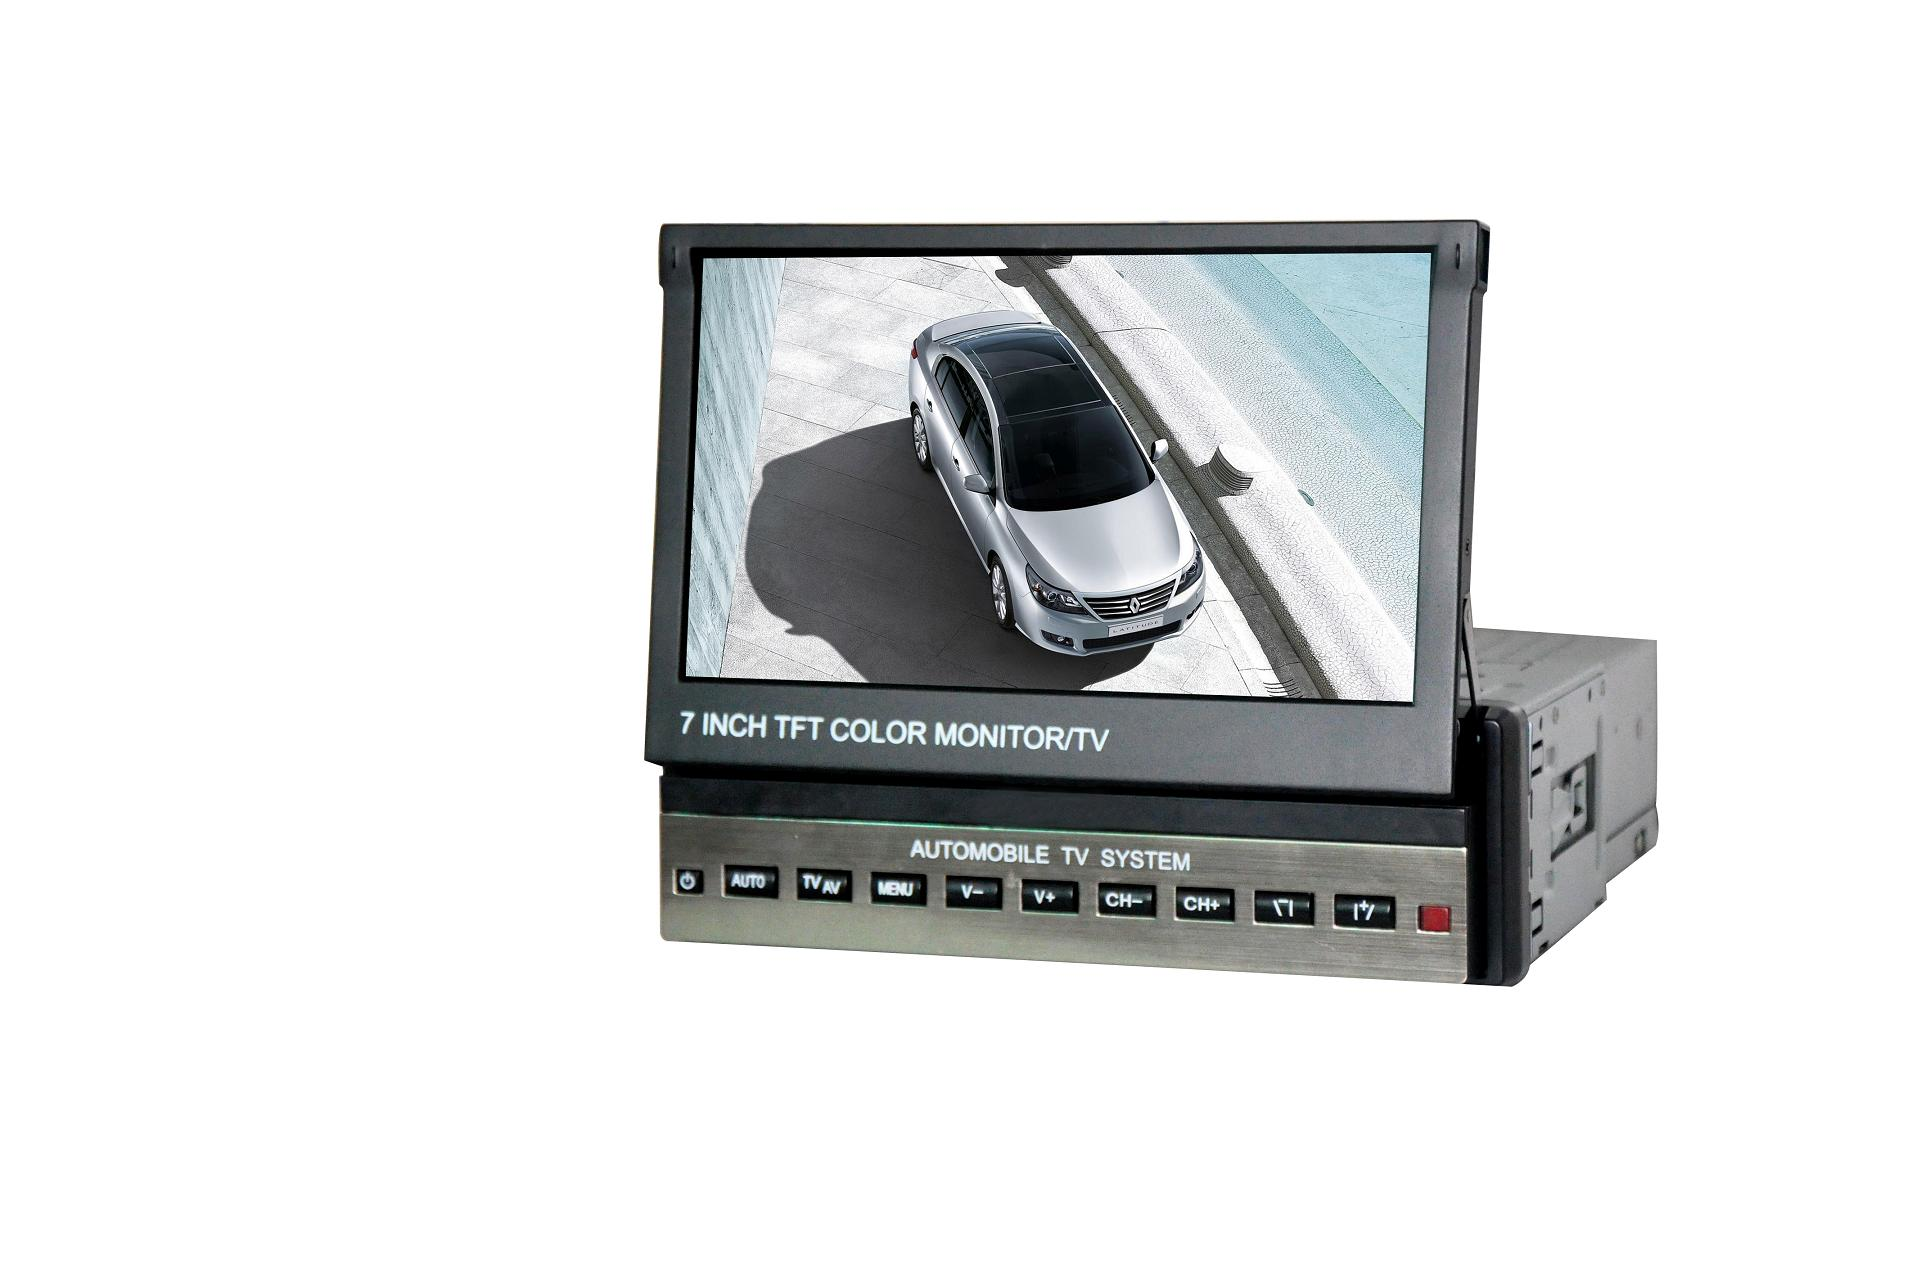 7 inch One Din In-dash Motorized TFT-LCD Monitor/TV